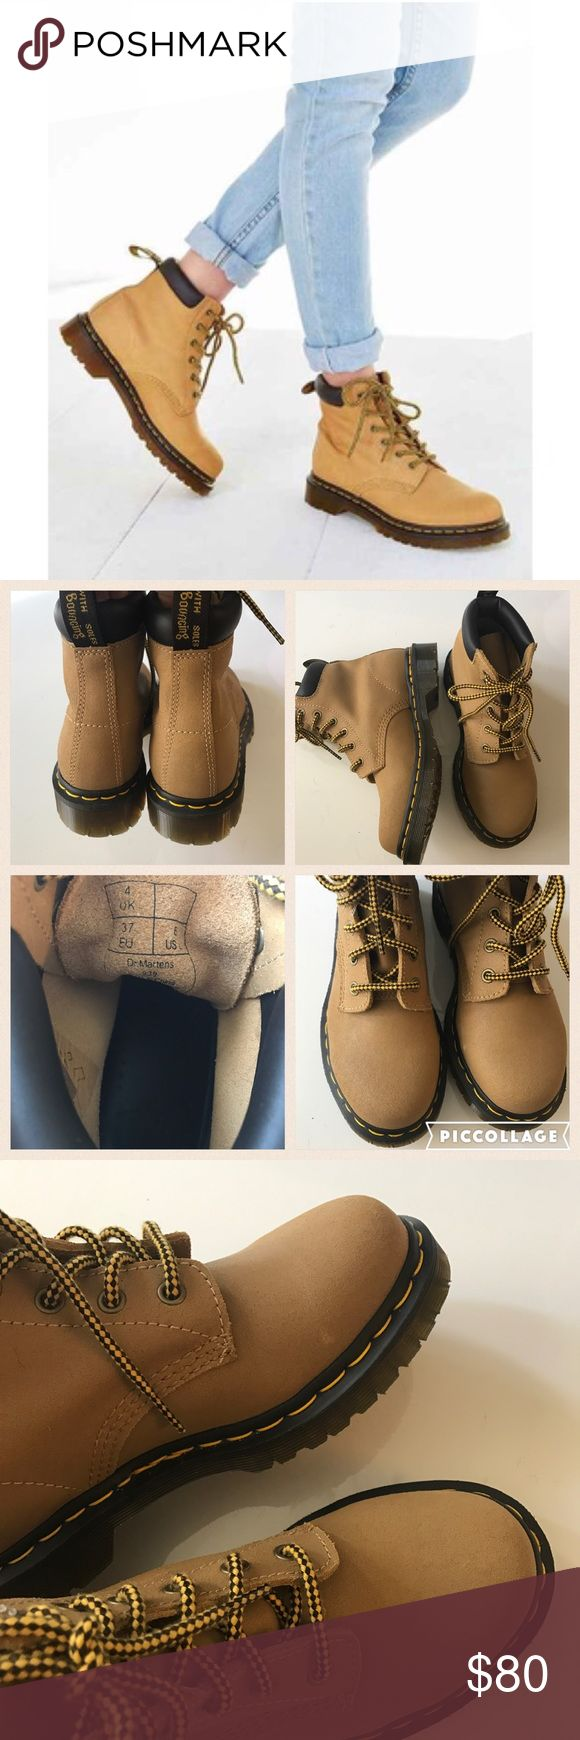 """NWOB suede Dr. martens 939 Brand new never worn Dr. Martens 939. Don't come with original box. Size UK4=US6 woman. Round toe. Suede construction. Lace up vamp. Padded collar. Back pull tab. Contrast stitched welt. Approx 5.5"""" shaft height. Approx 1.25"""" heel, 5/8"""" platform Dr. Martens Shoes Combat & Moto Boots"""